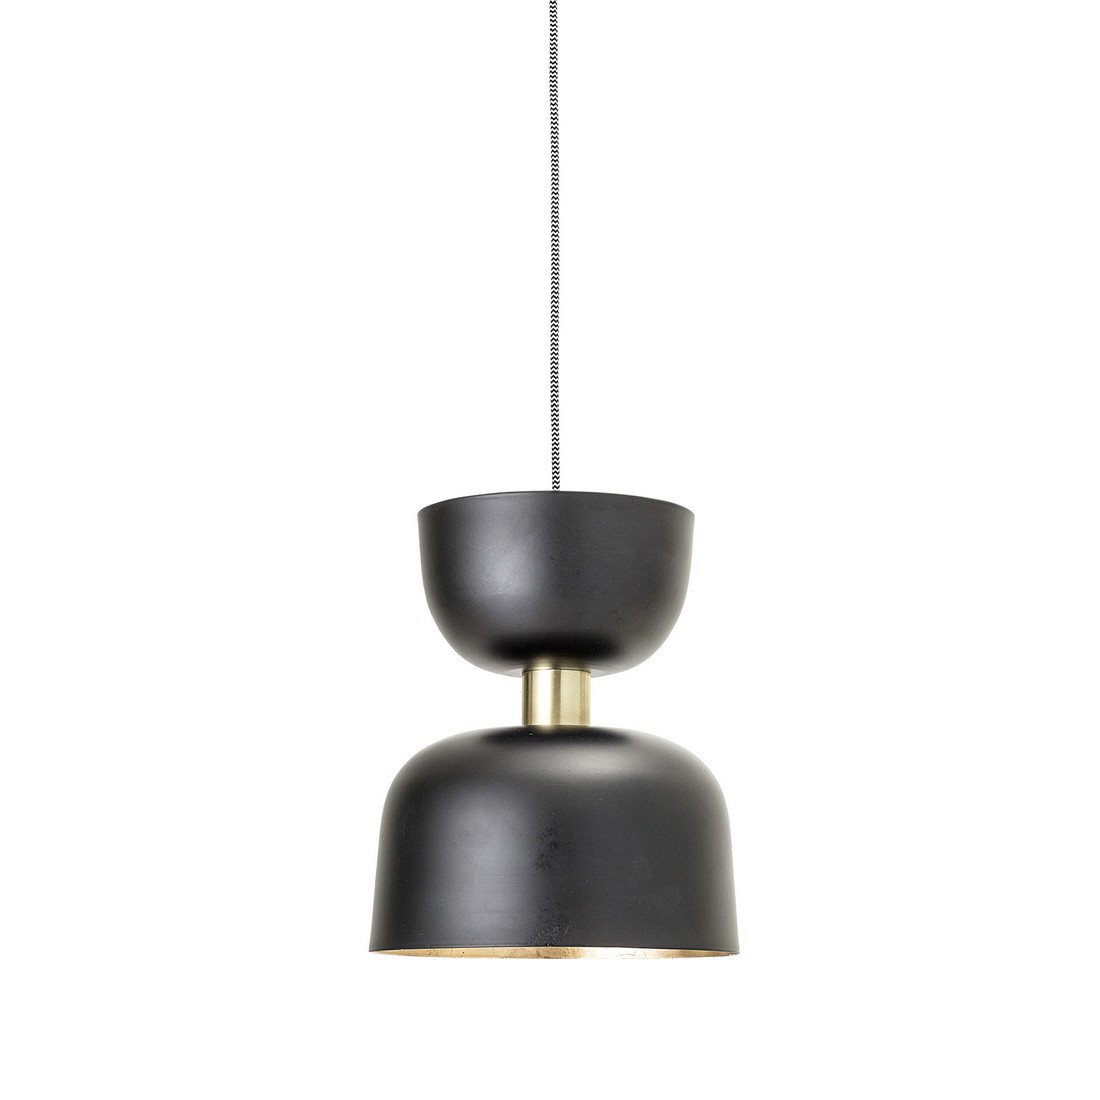 Suspension Noir Metal Bloomingville Suspension Design Metal Noir Laiton 82040770 Kdesign